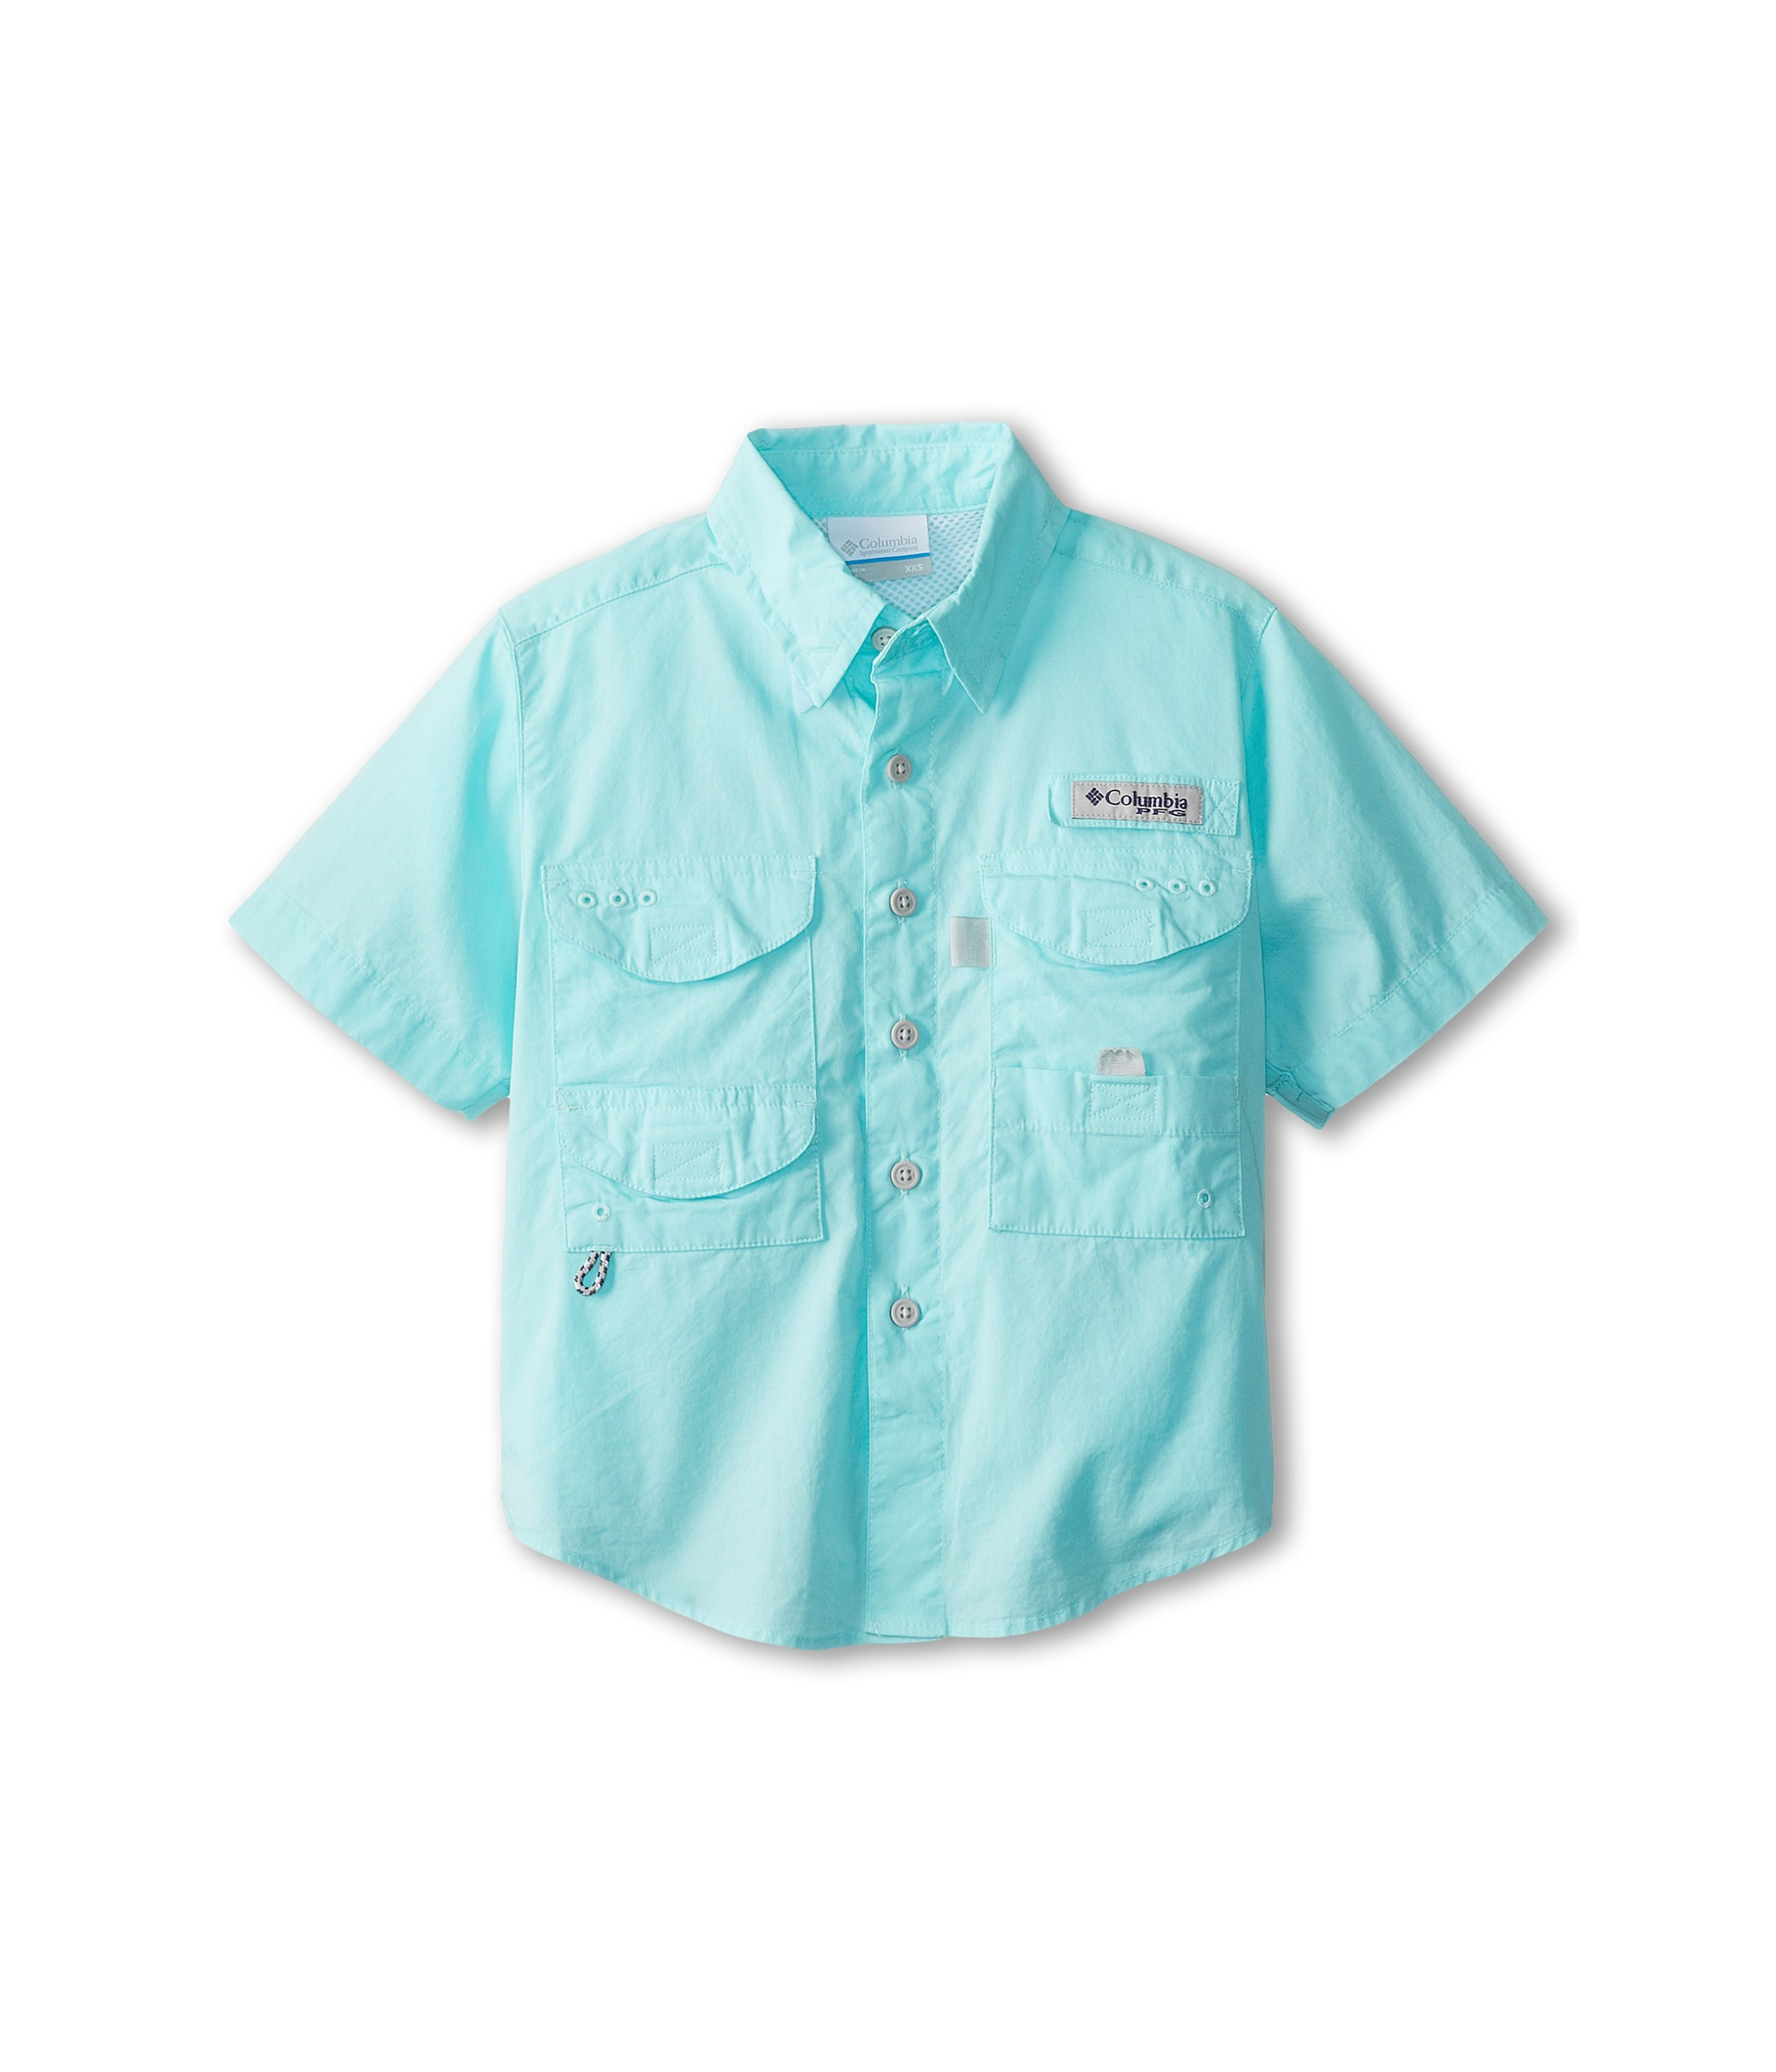 Columbia kids bonehead s s shirt little kids big kids for Baby fishing shirts columbia